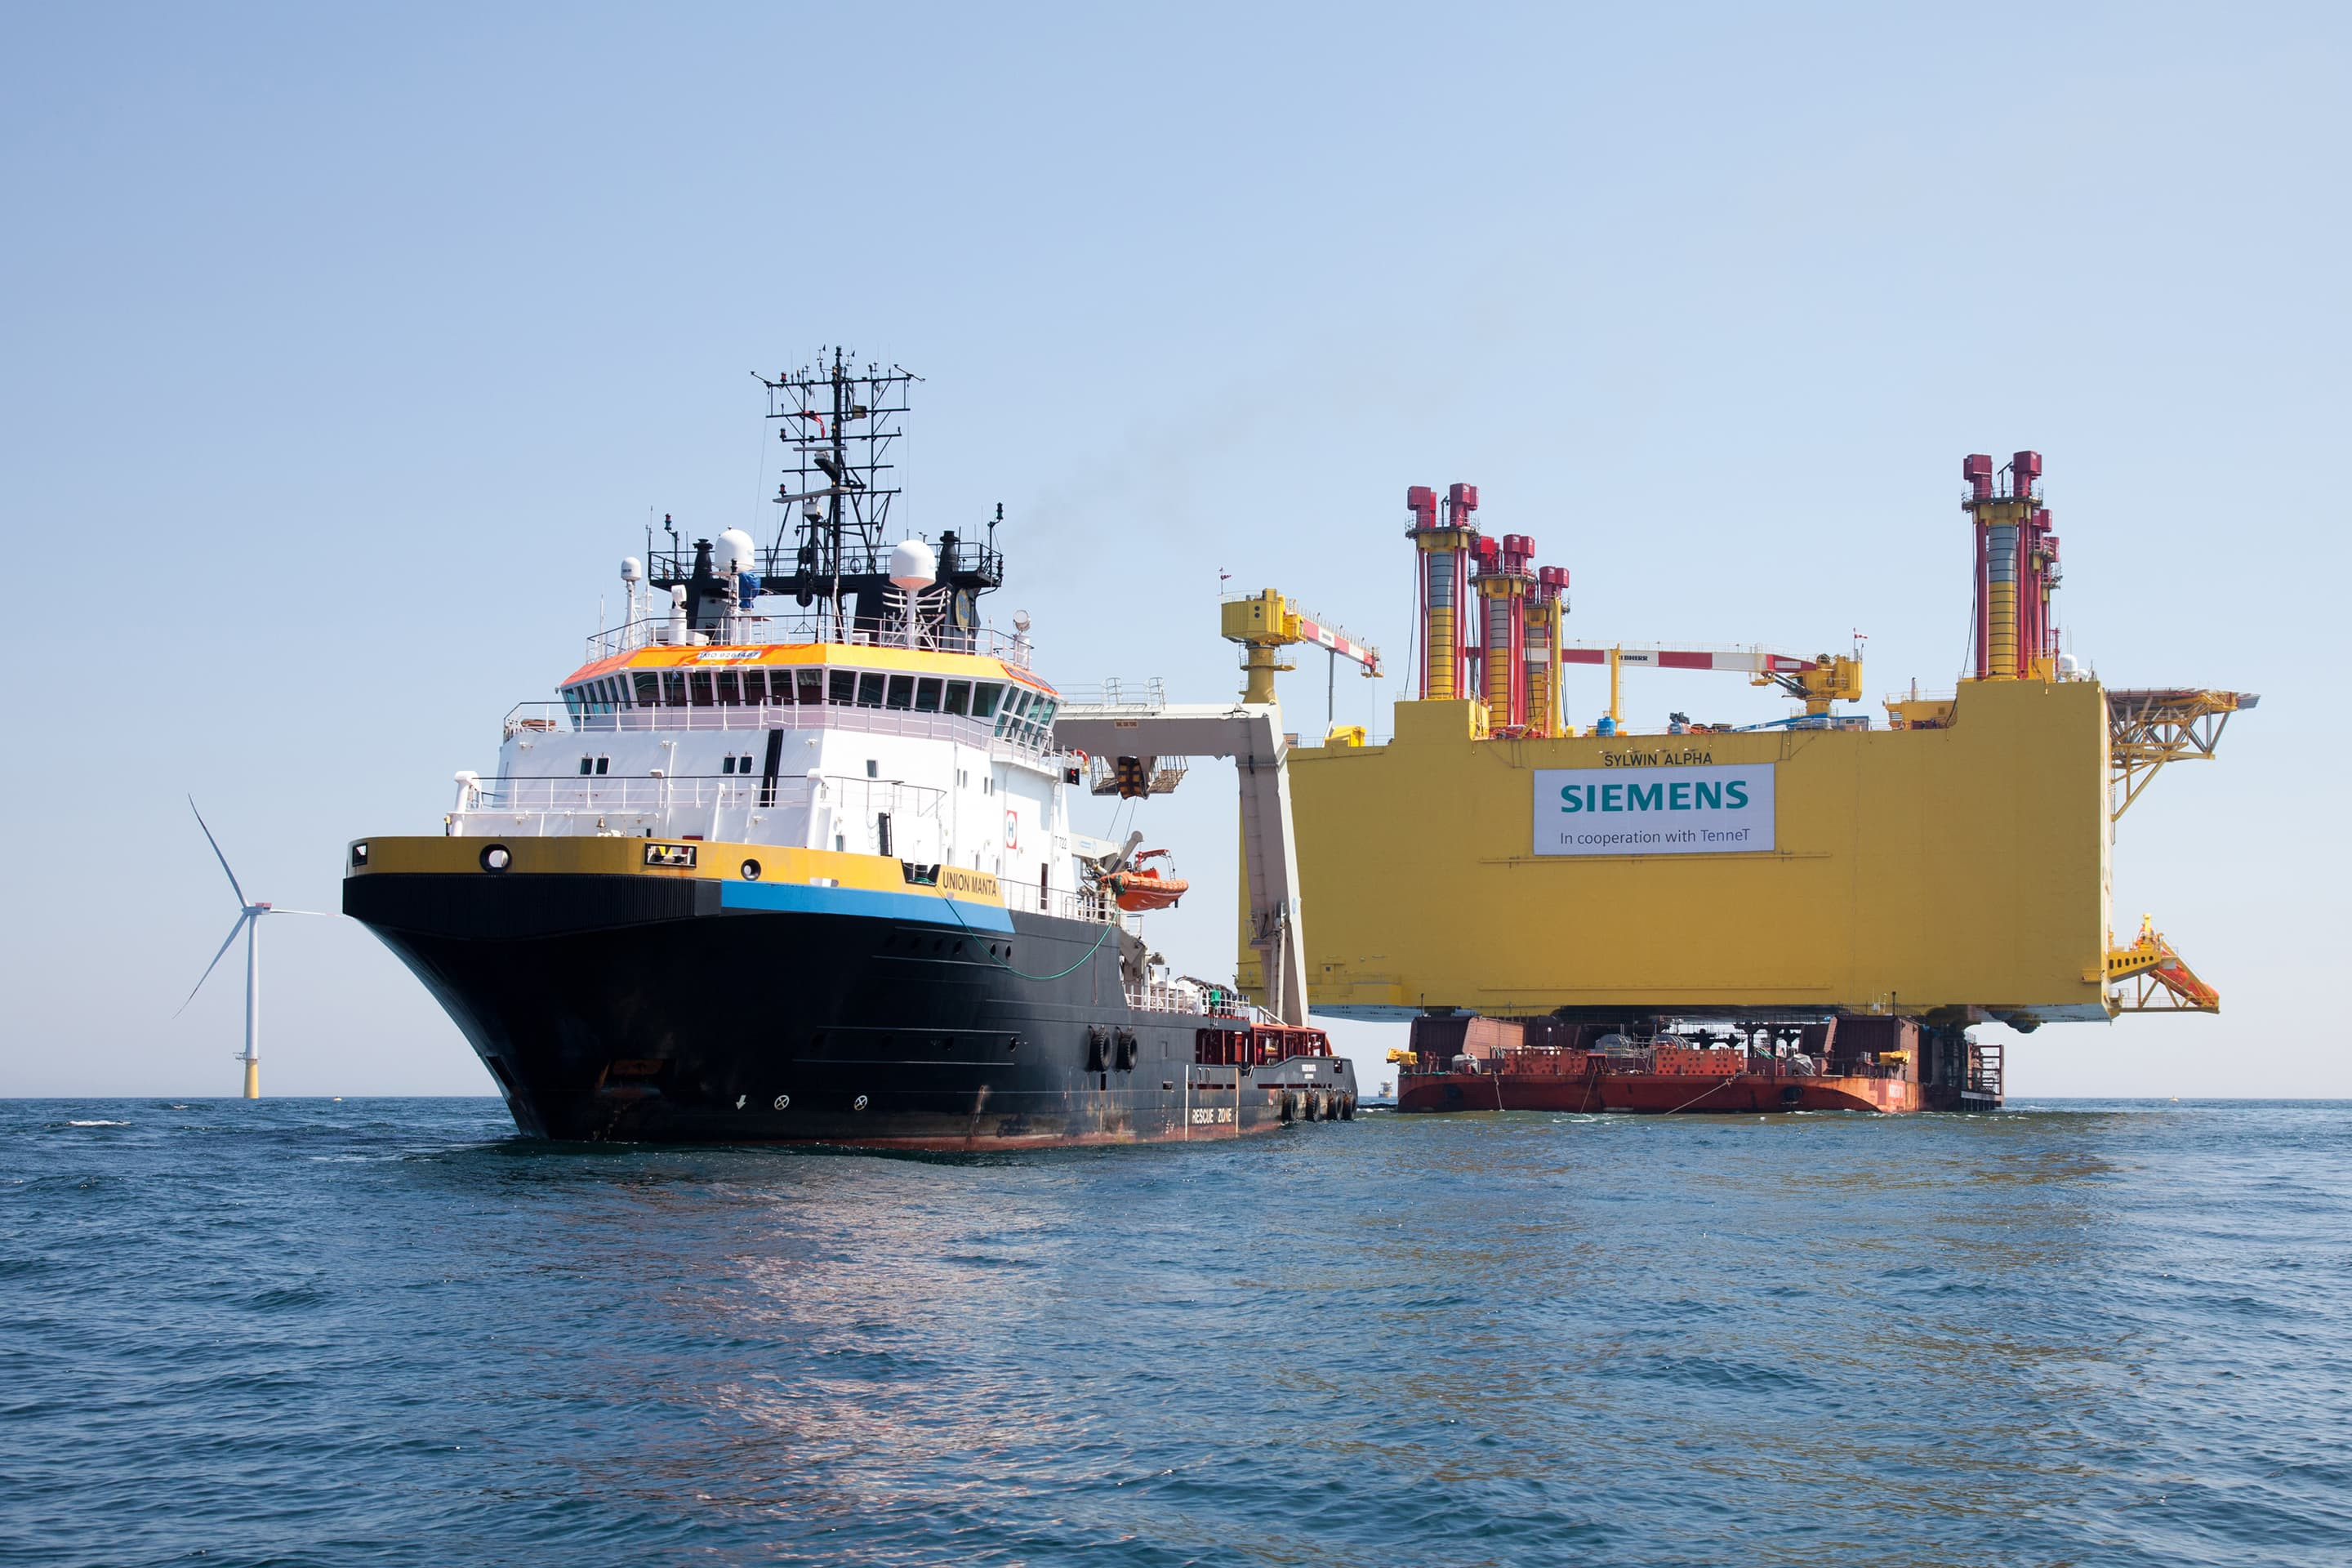 Towage of the SylWin Alpha platform by anchor handling tug Union Manta